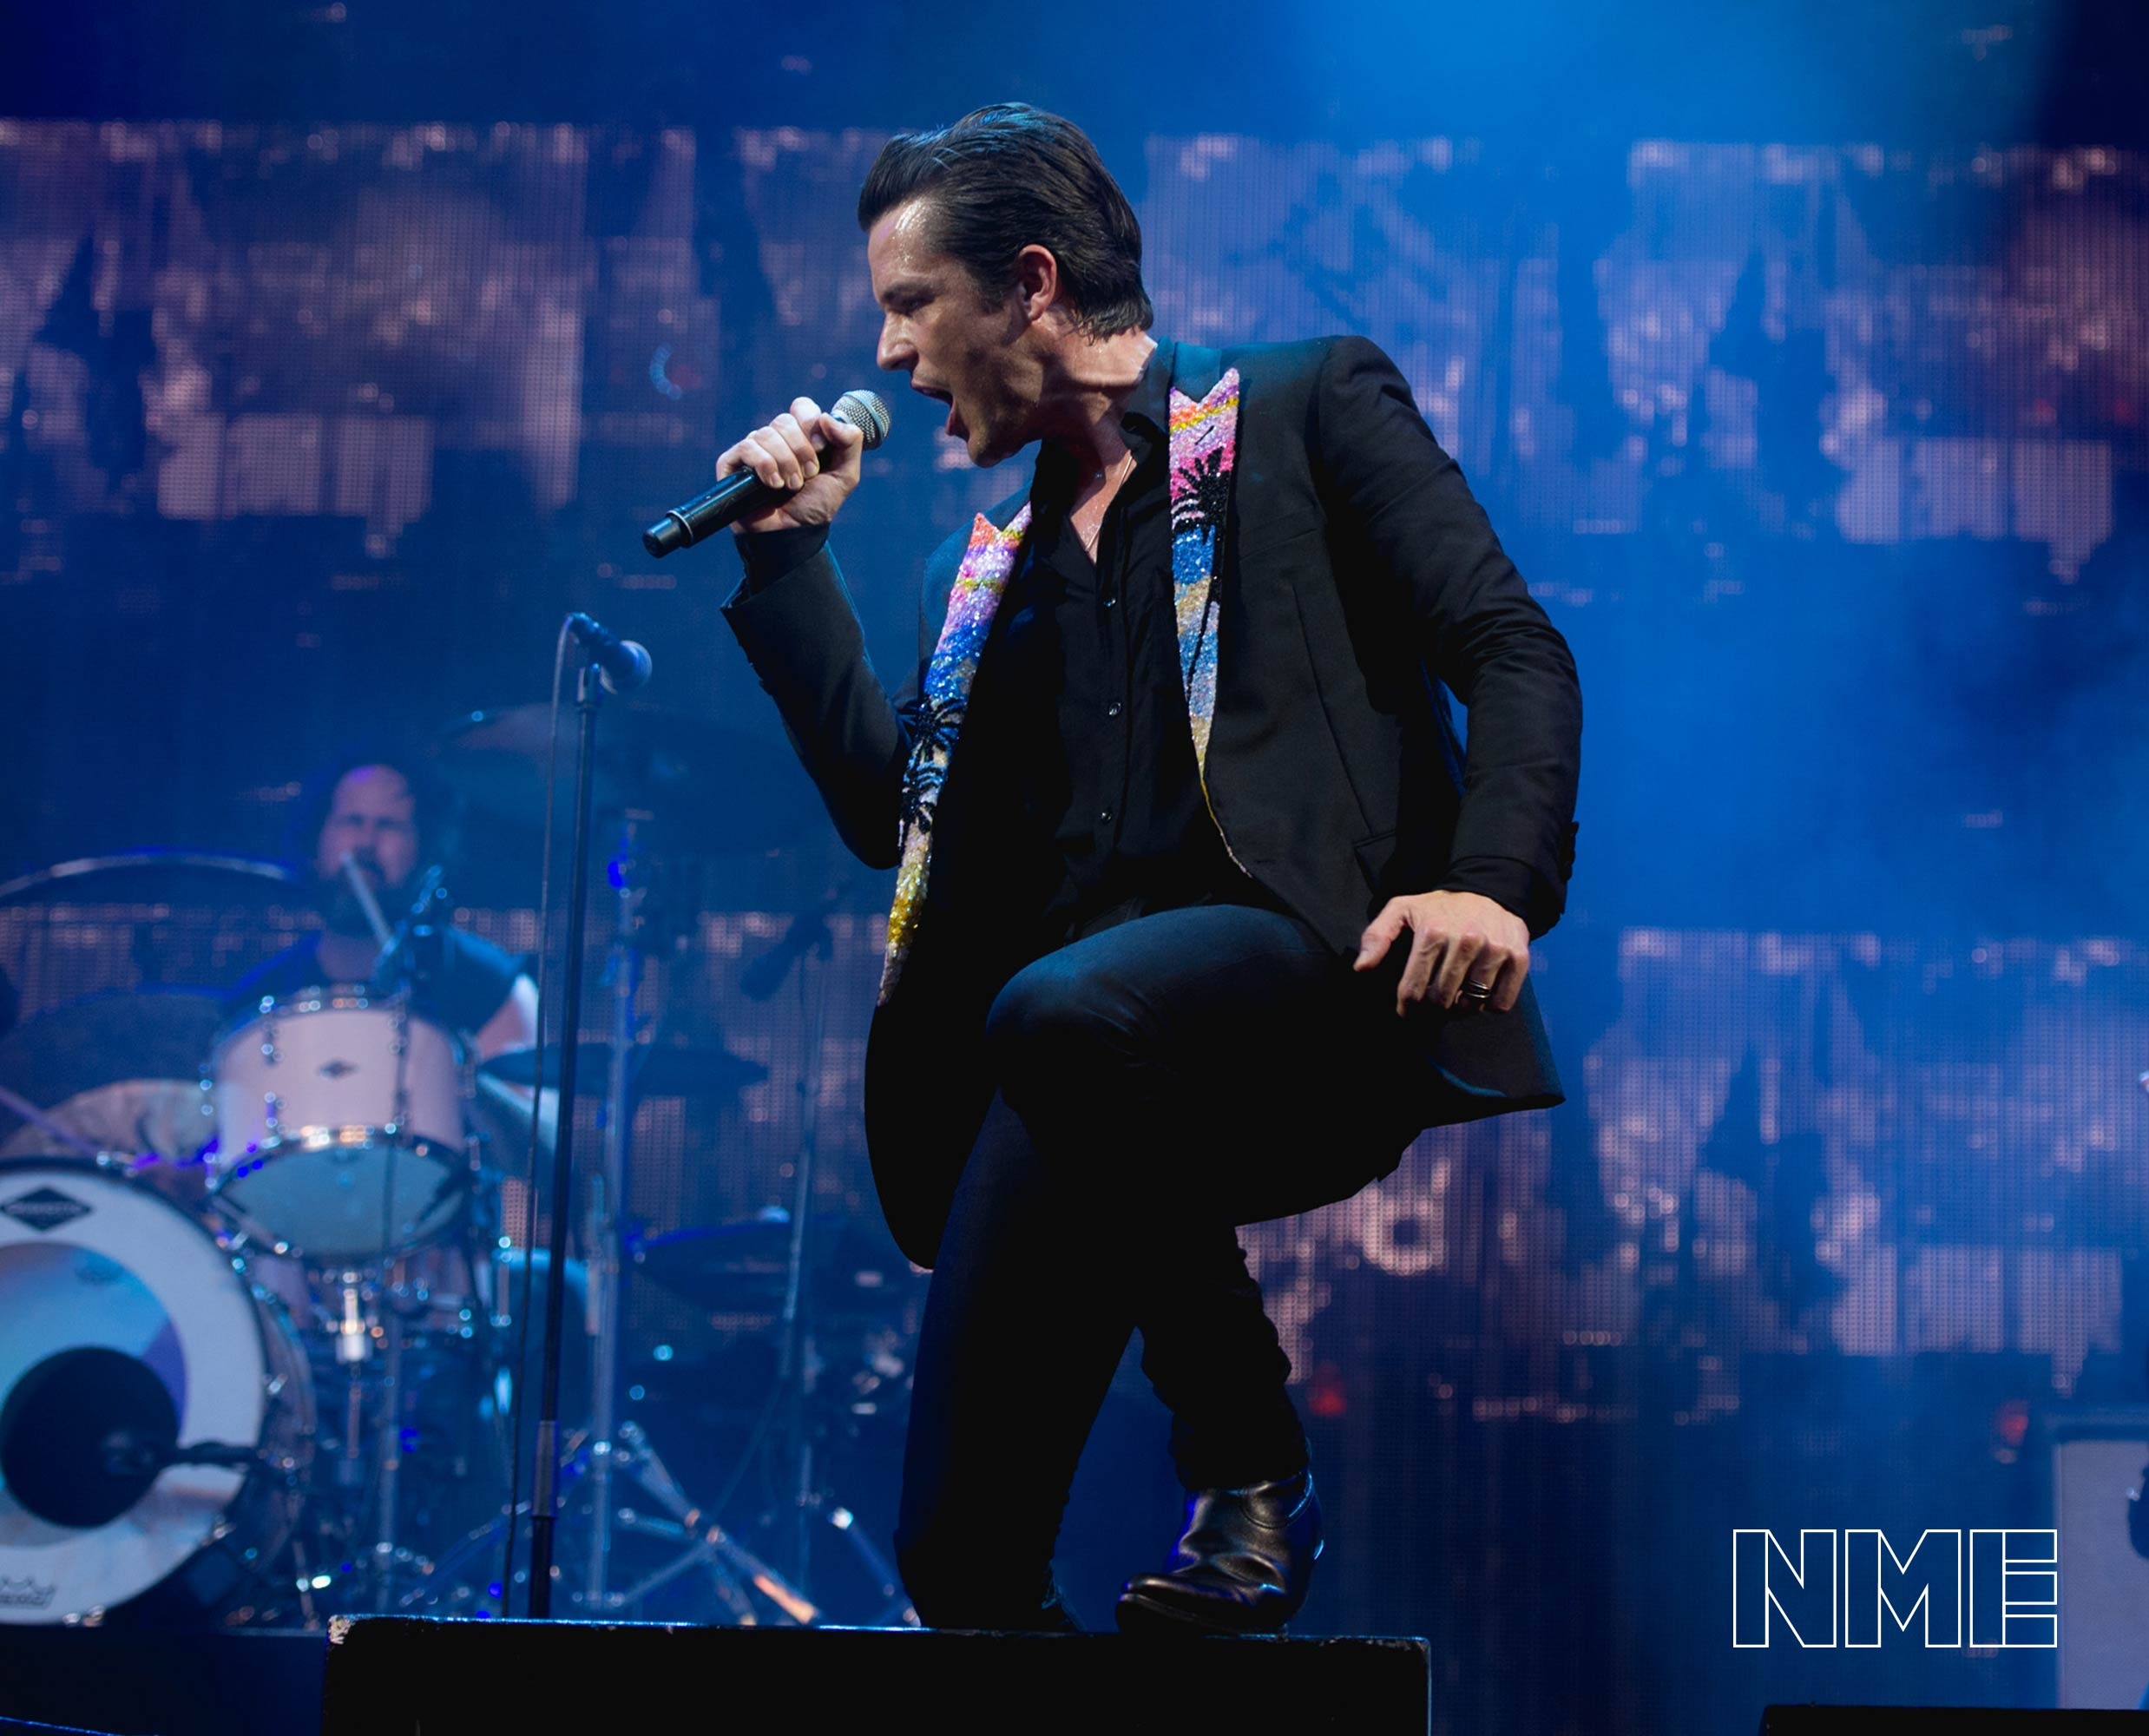 The Killers at Glastonbury